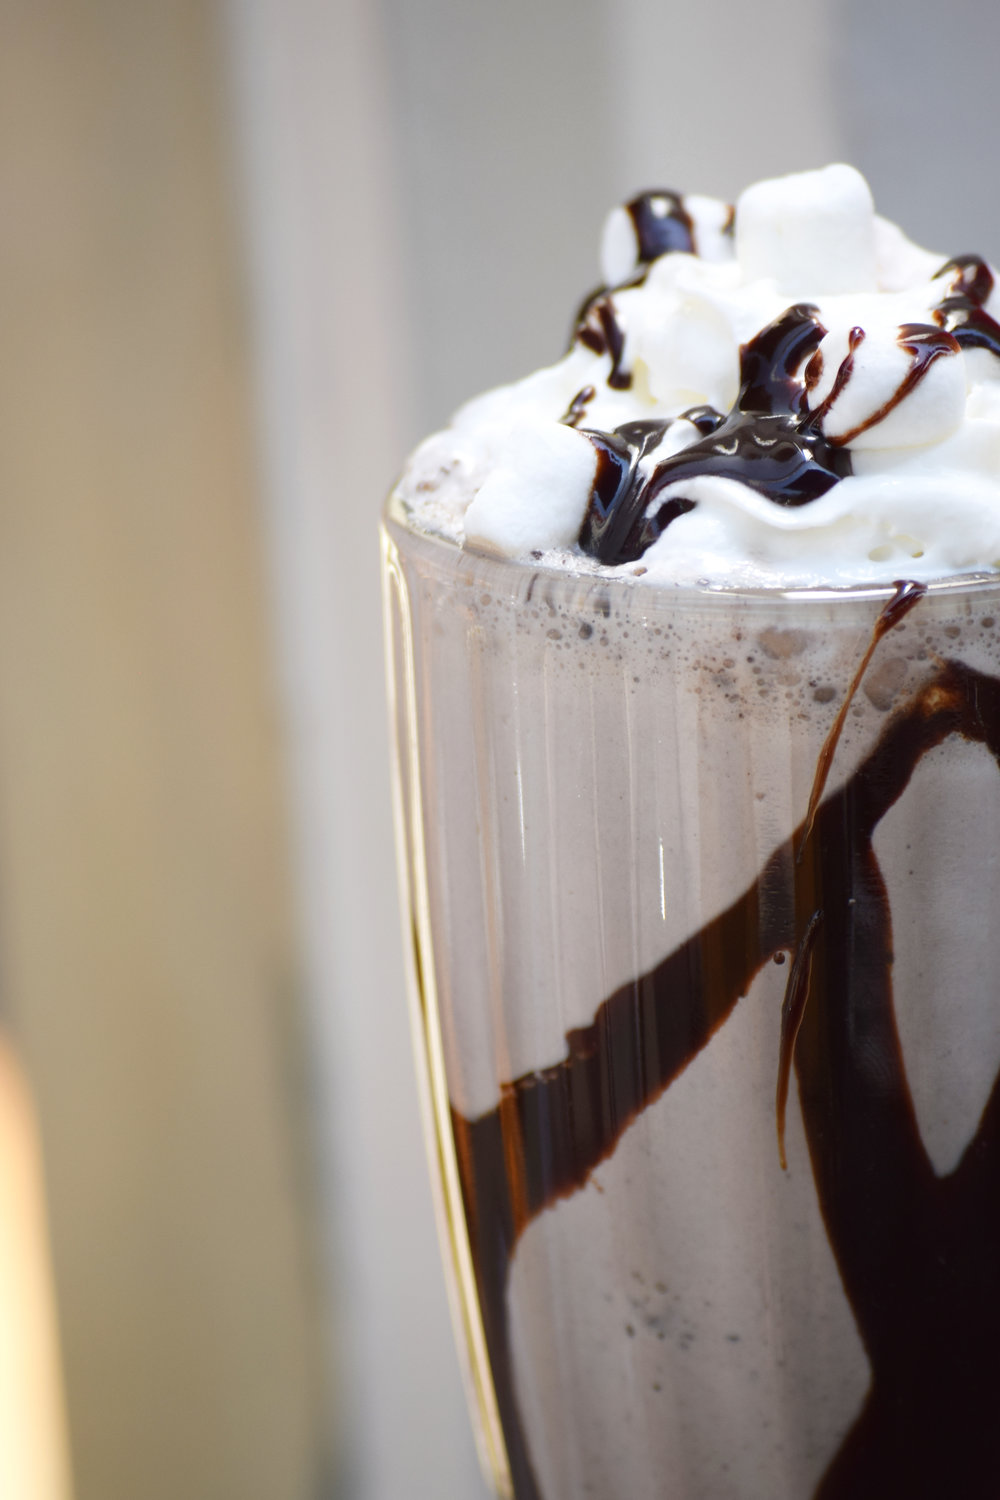 A chocolate milk shake zoomed in with marshmallows and whipped cream